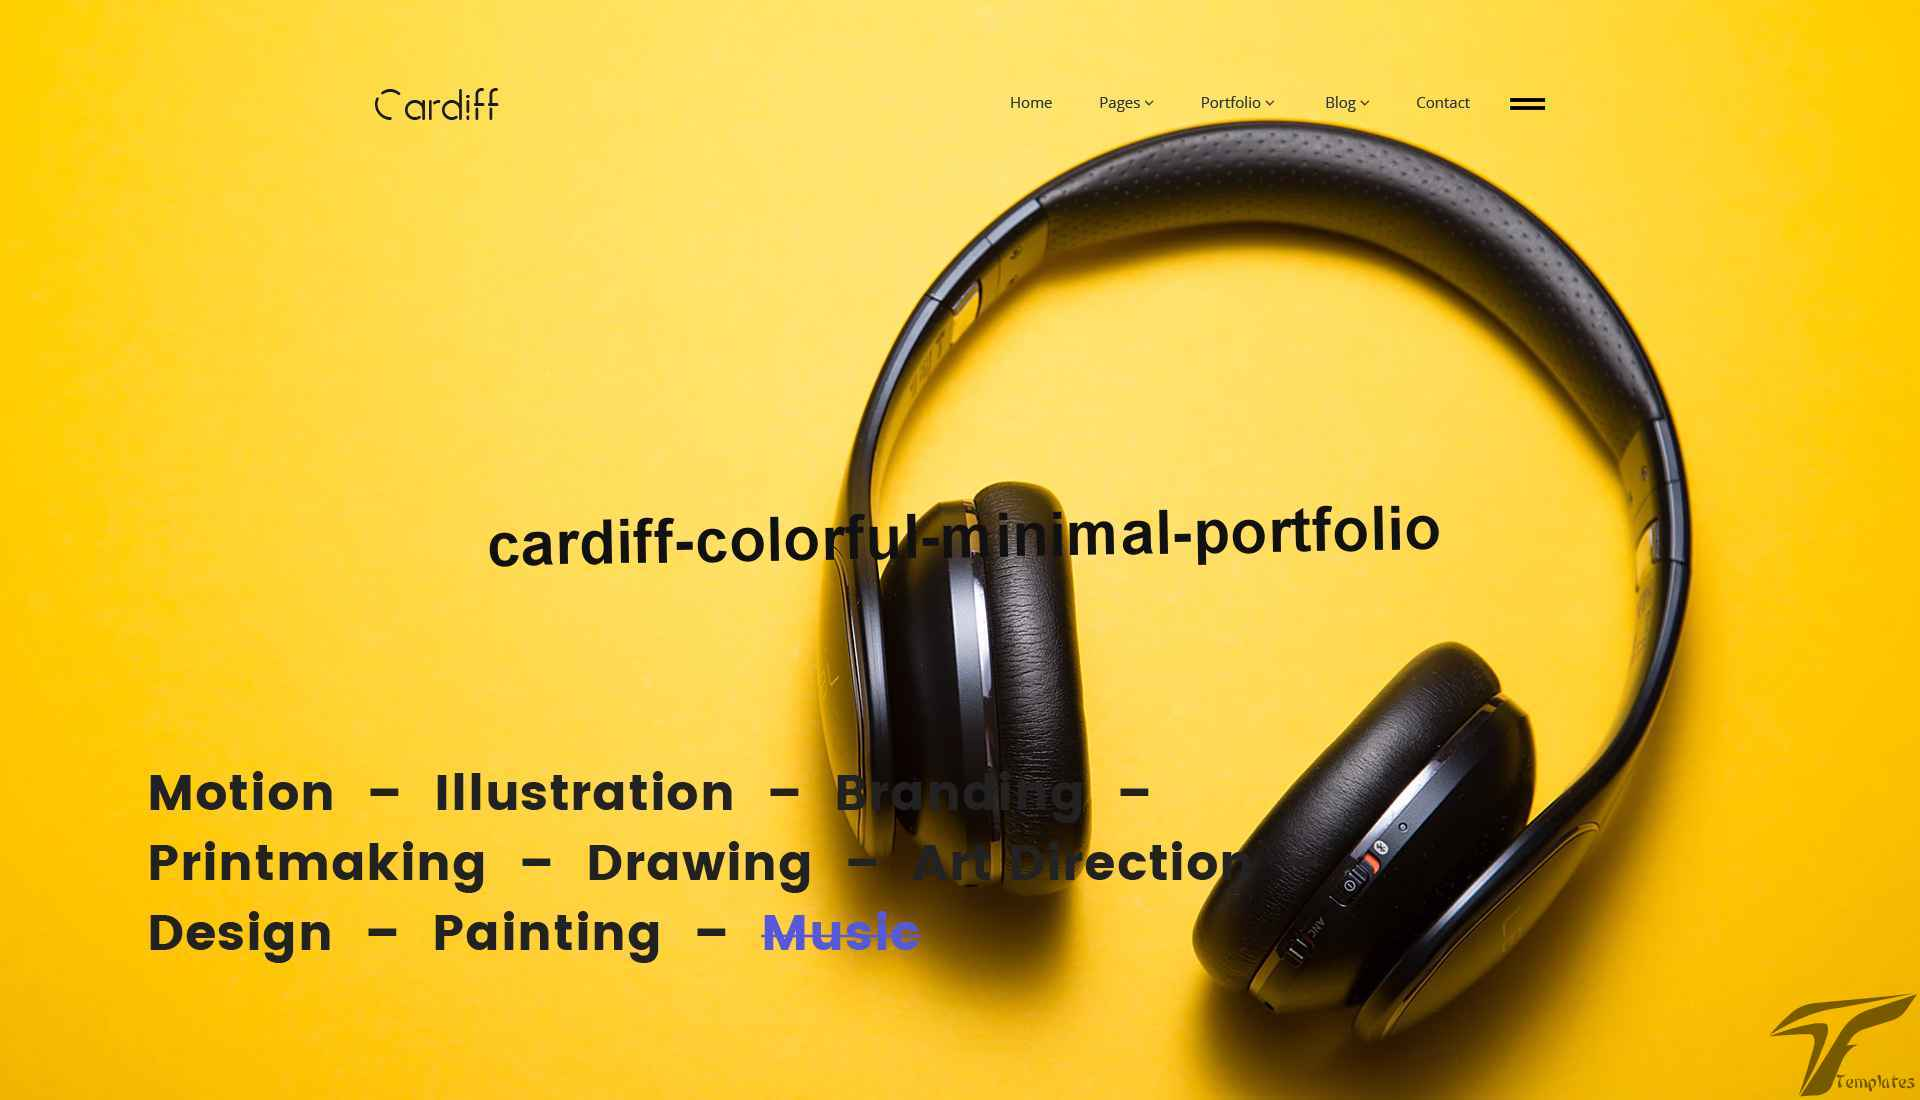 https://images.besthemes.com/images/h1_cardiff-colorful-minimal-portfolio6-_-250772536/Cardiff-Colorfull-Portfolio-Prview/05-Interactive-Showcase-Home.jpg